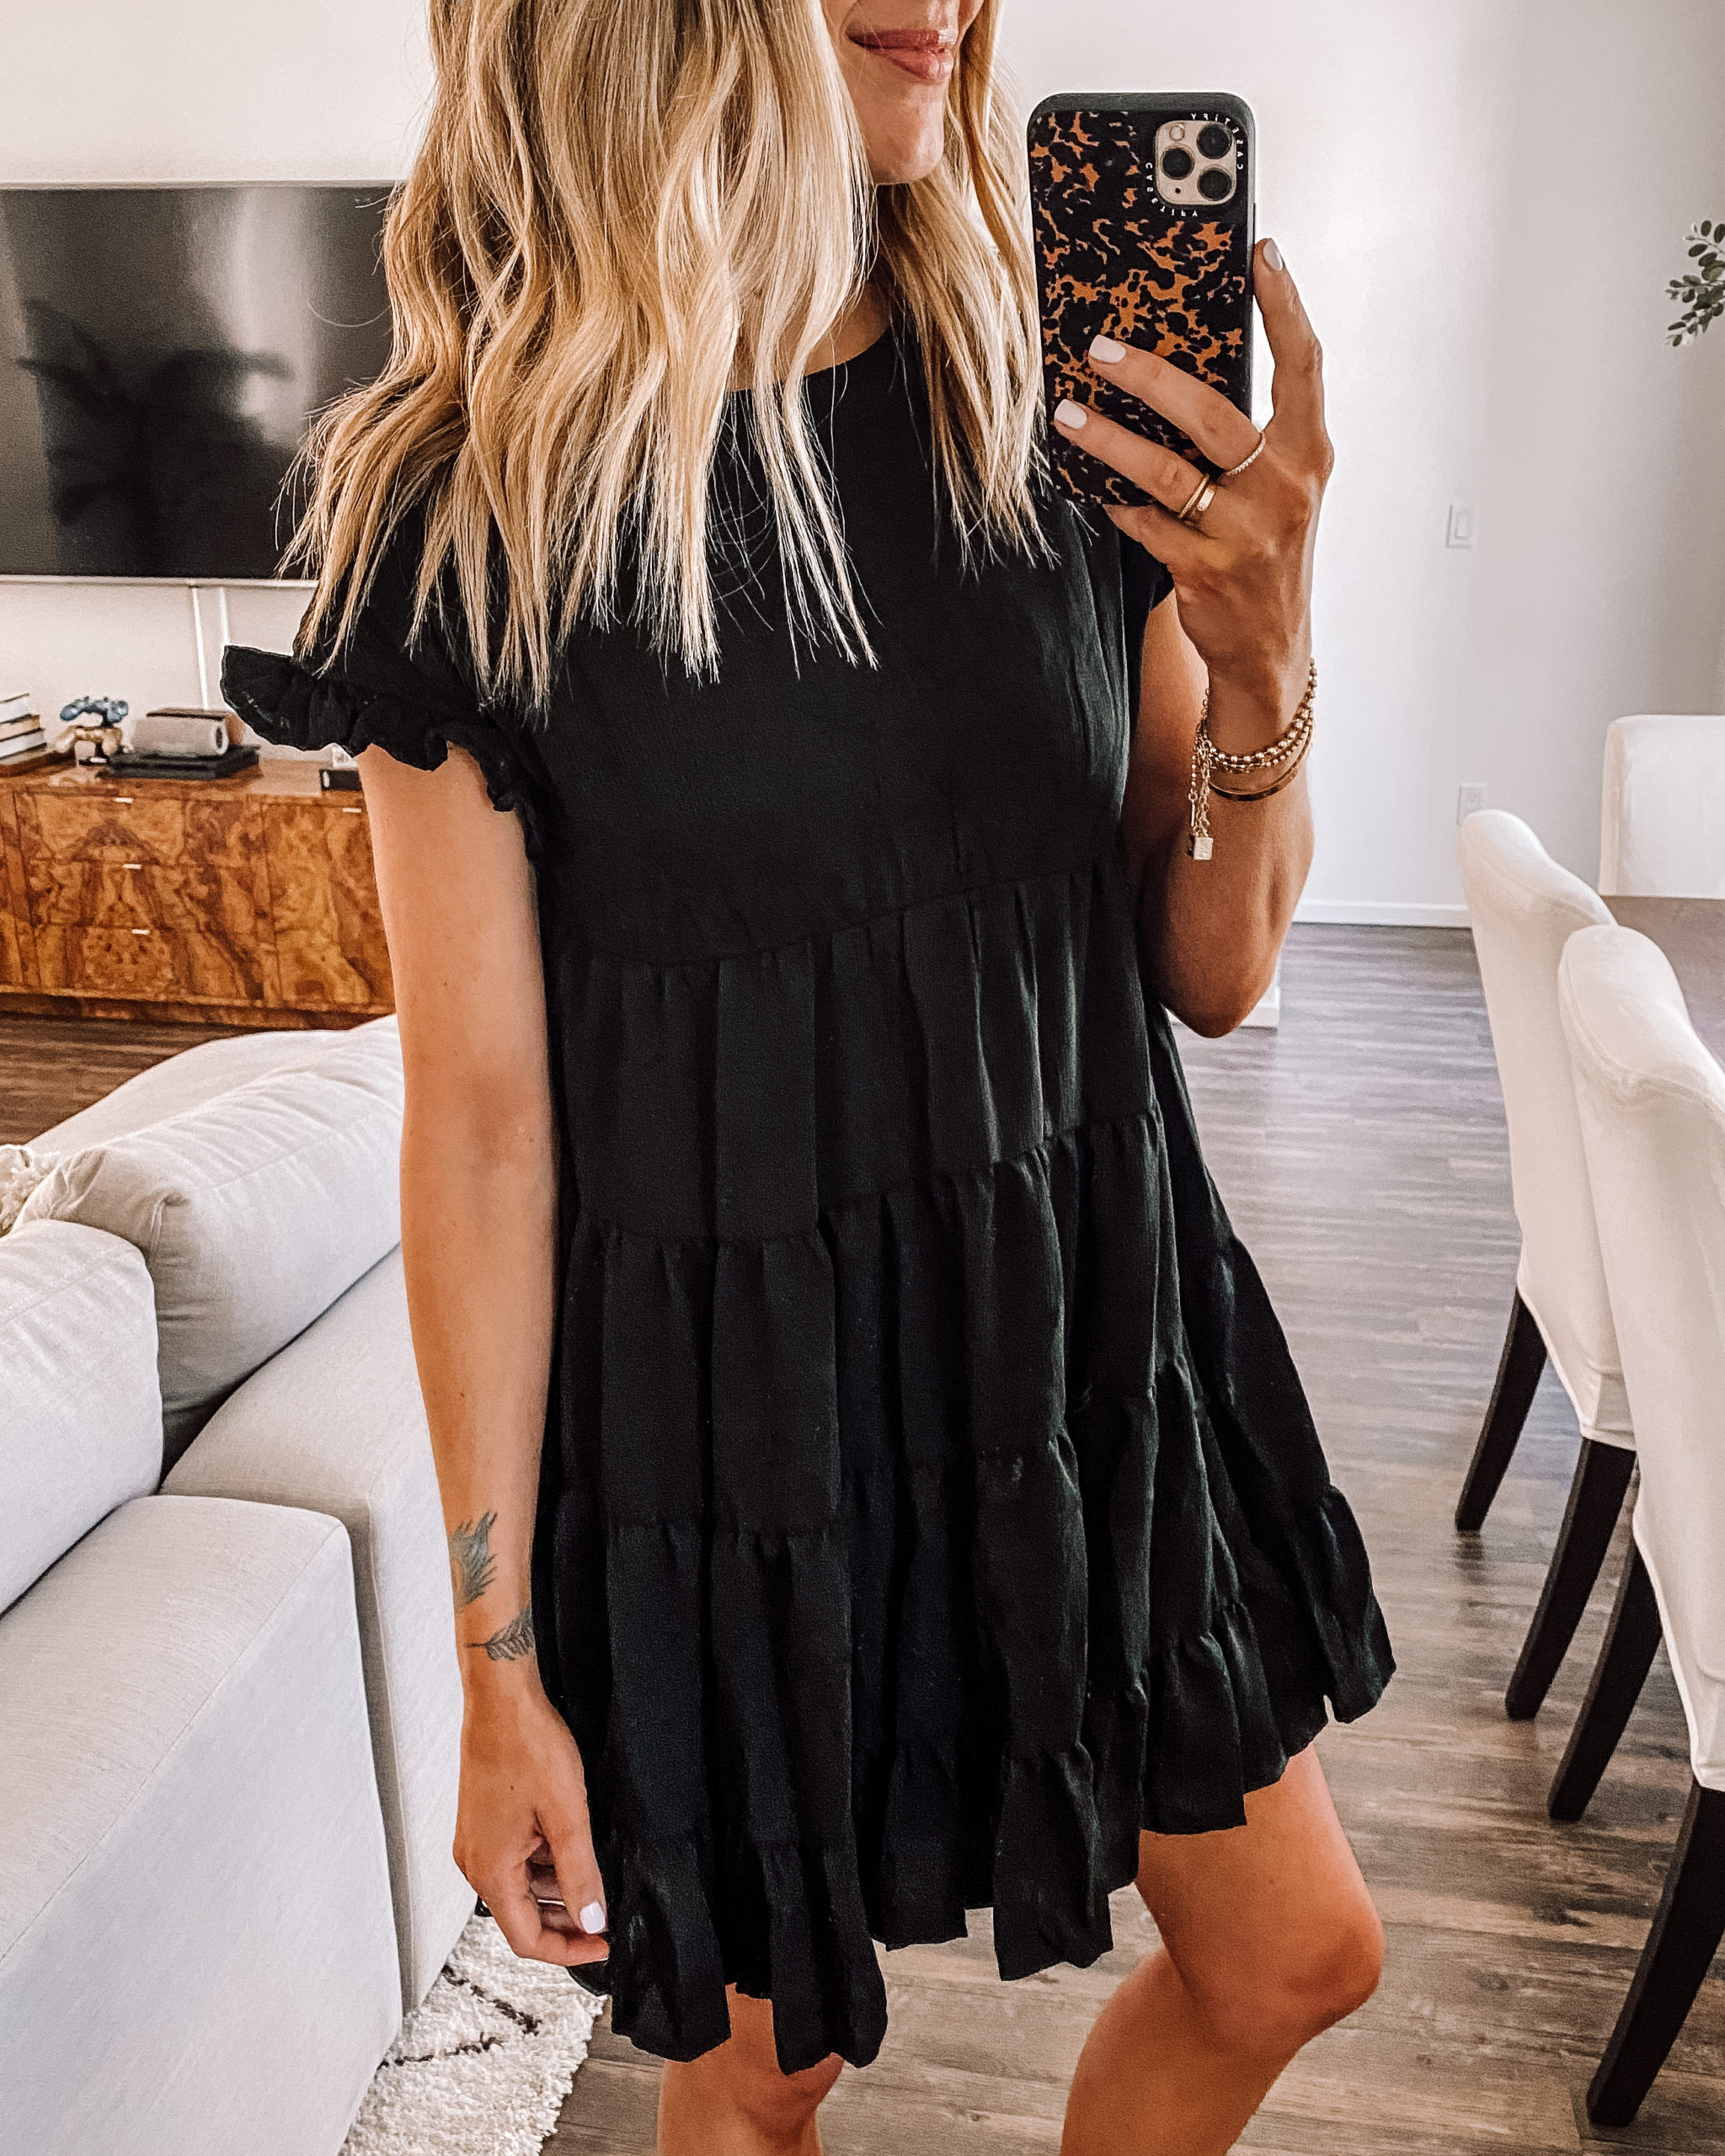 Fashion Jackson Wearing Amazon Fashion Black Ruffle Mini Dress